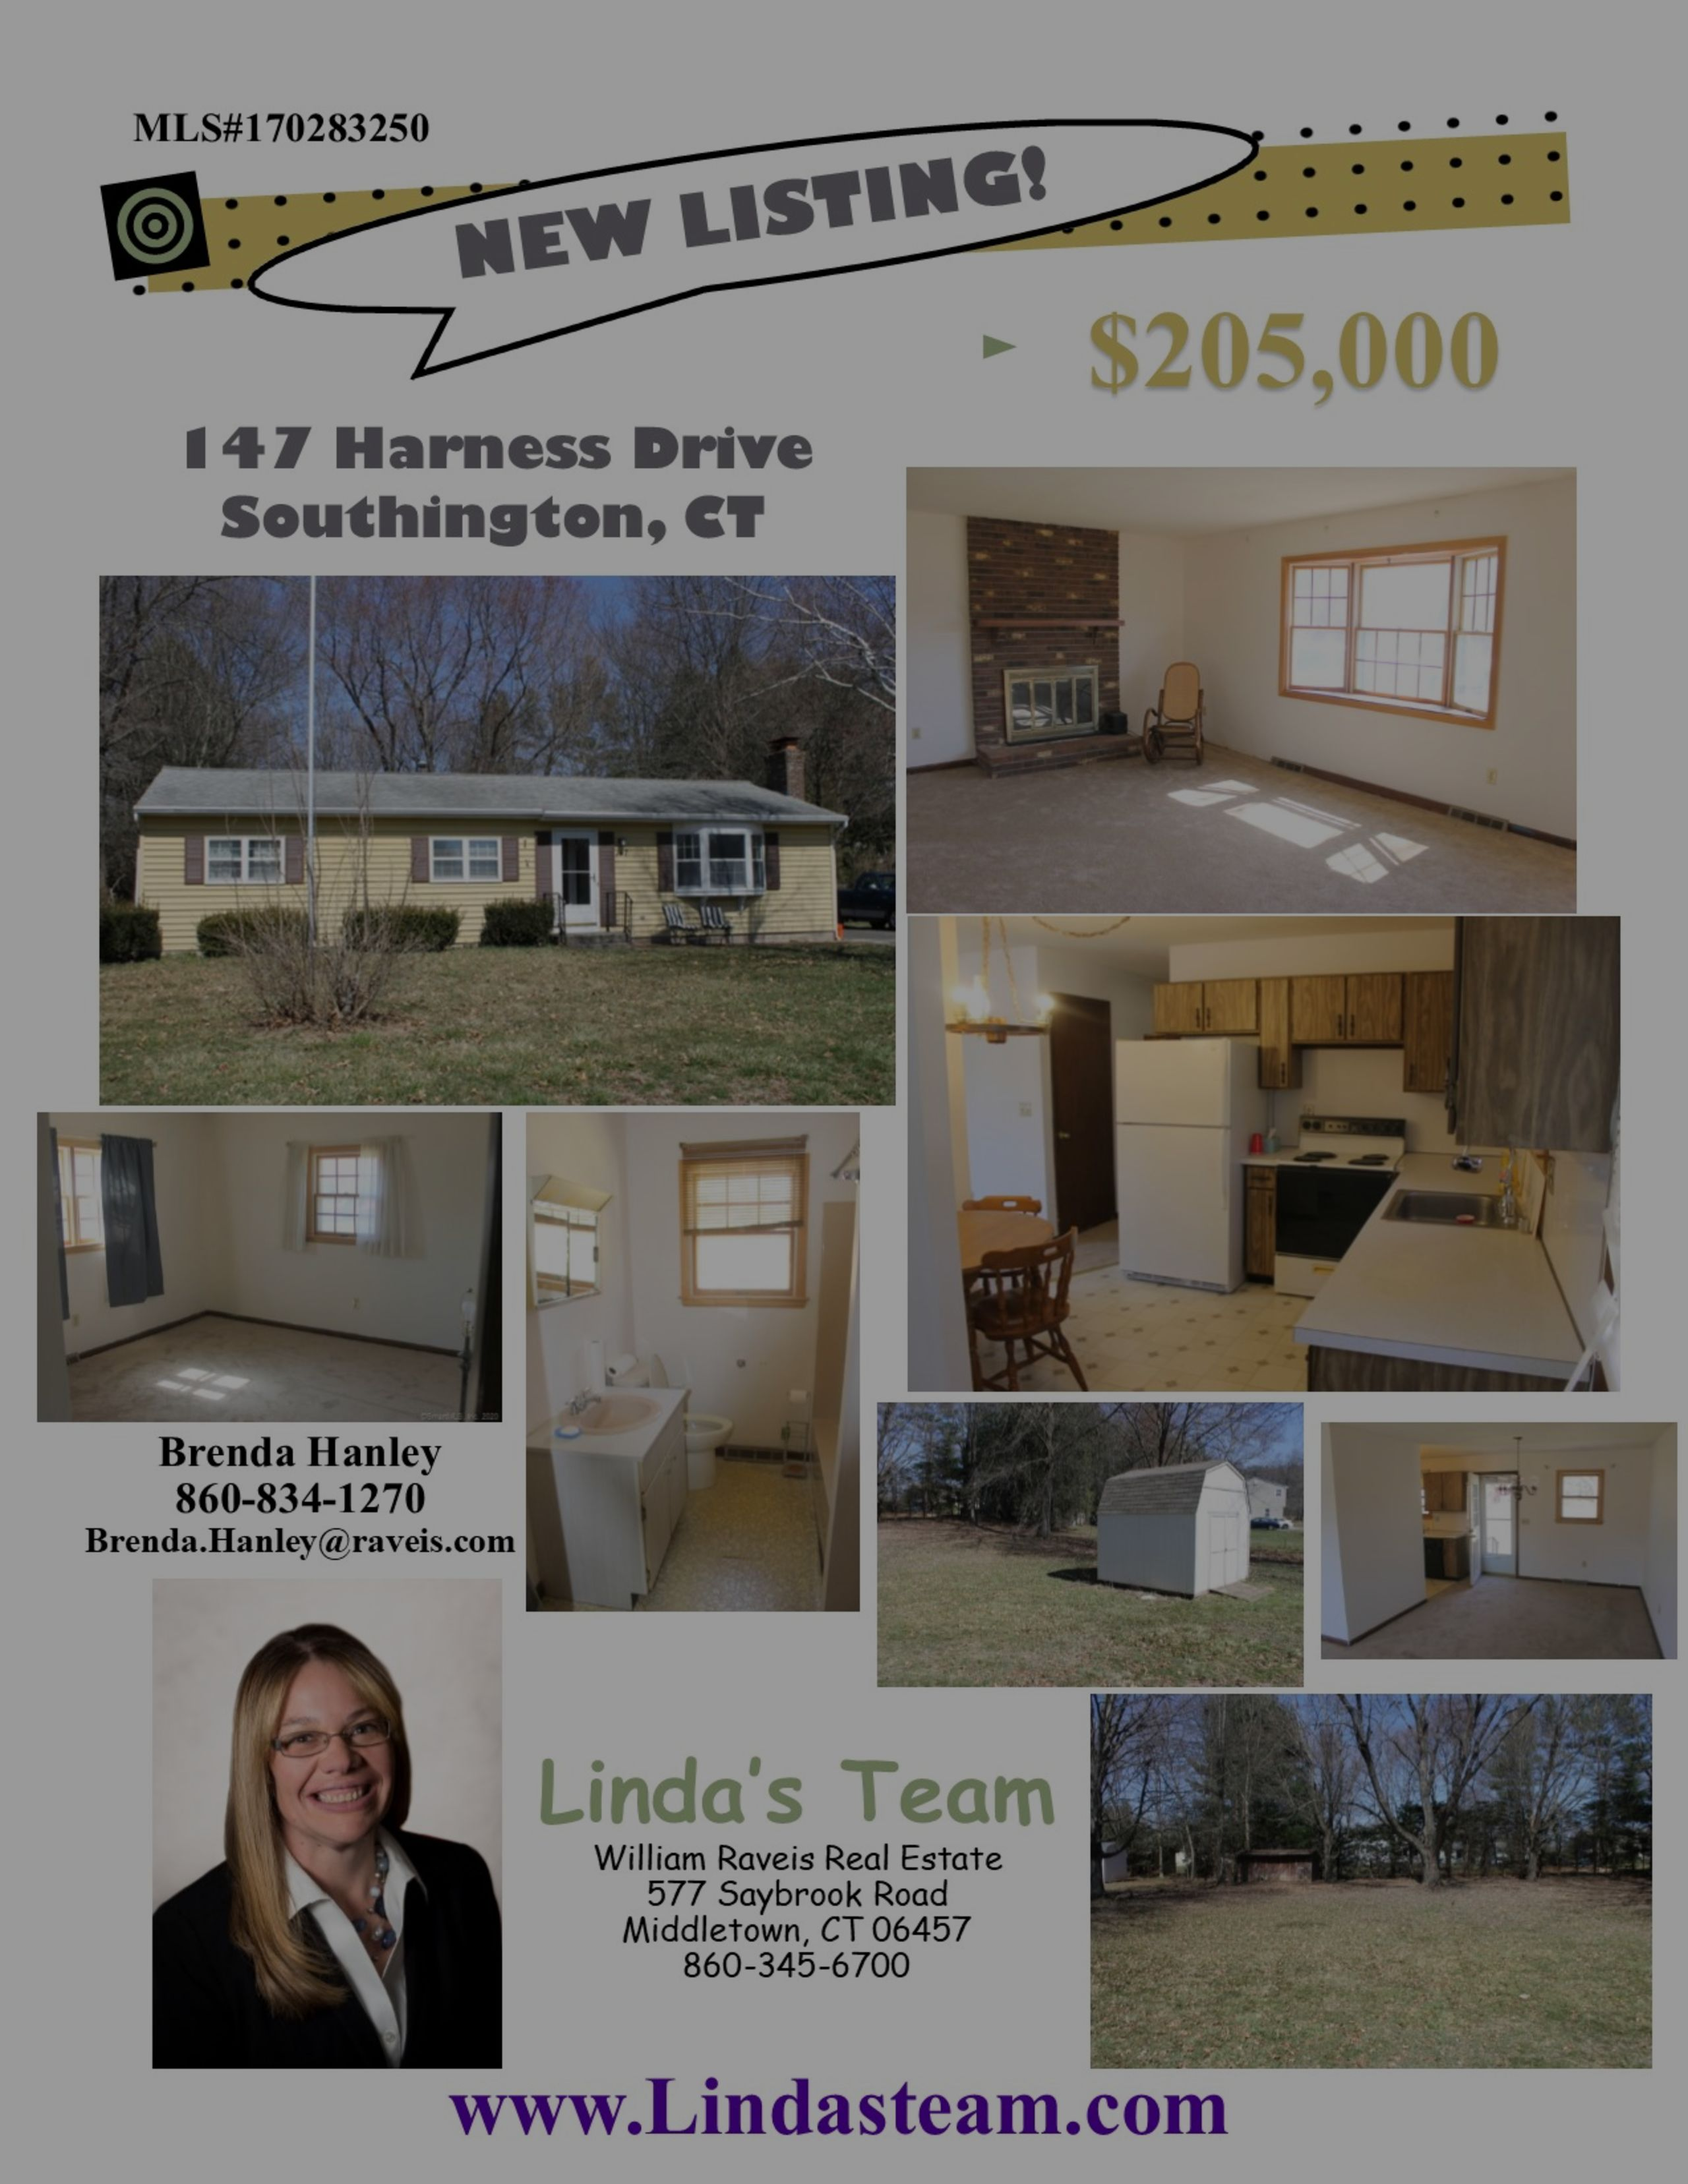 New Listing in Southington, Connecticut!